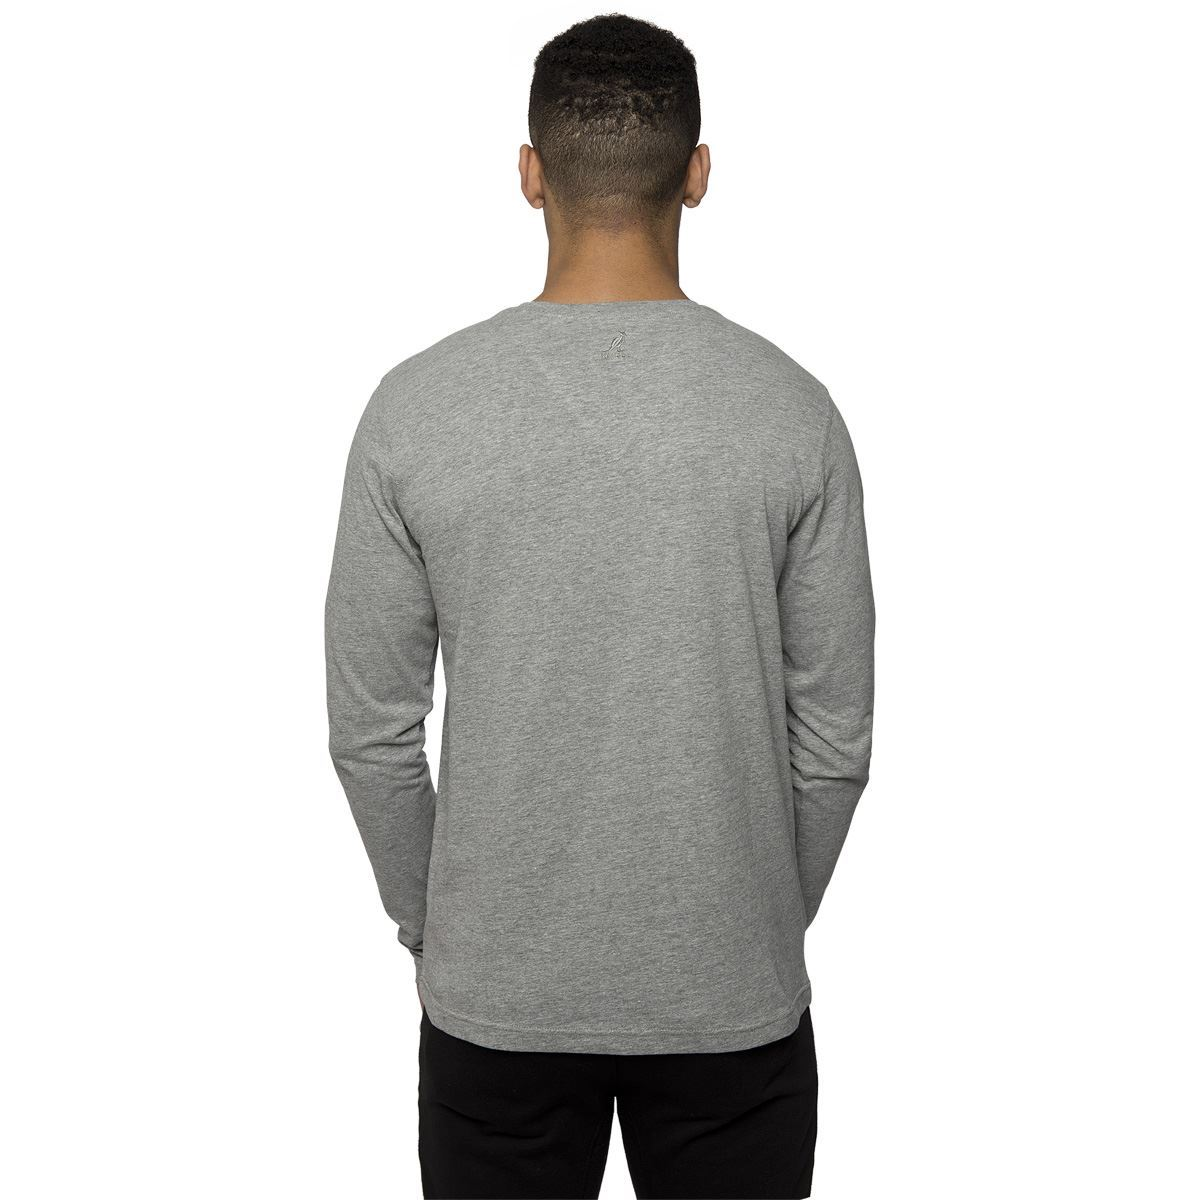 Kangol mens casual long sleeved t shirt button fastening for Xxl long sleeve t shirts